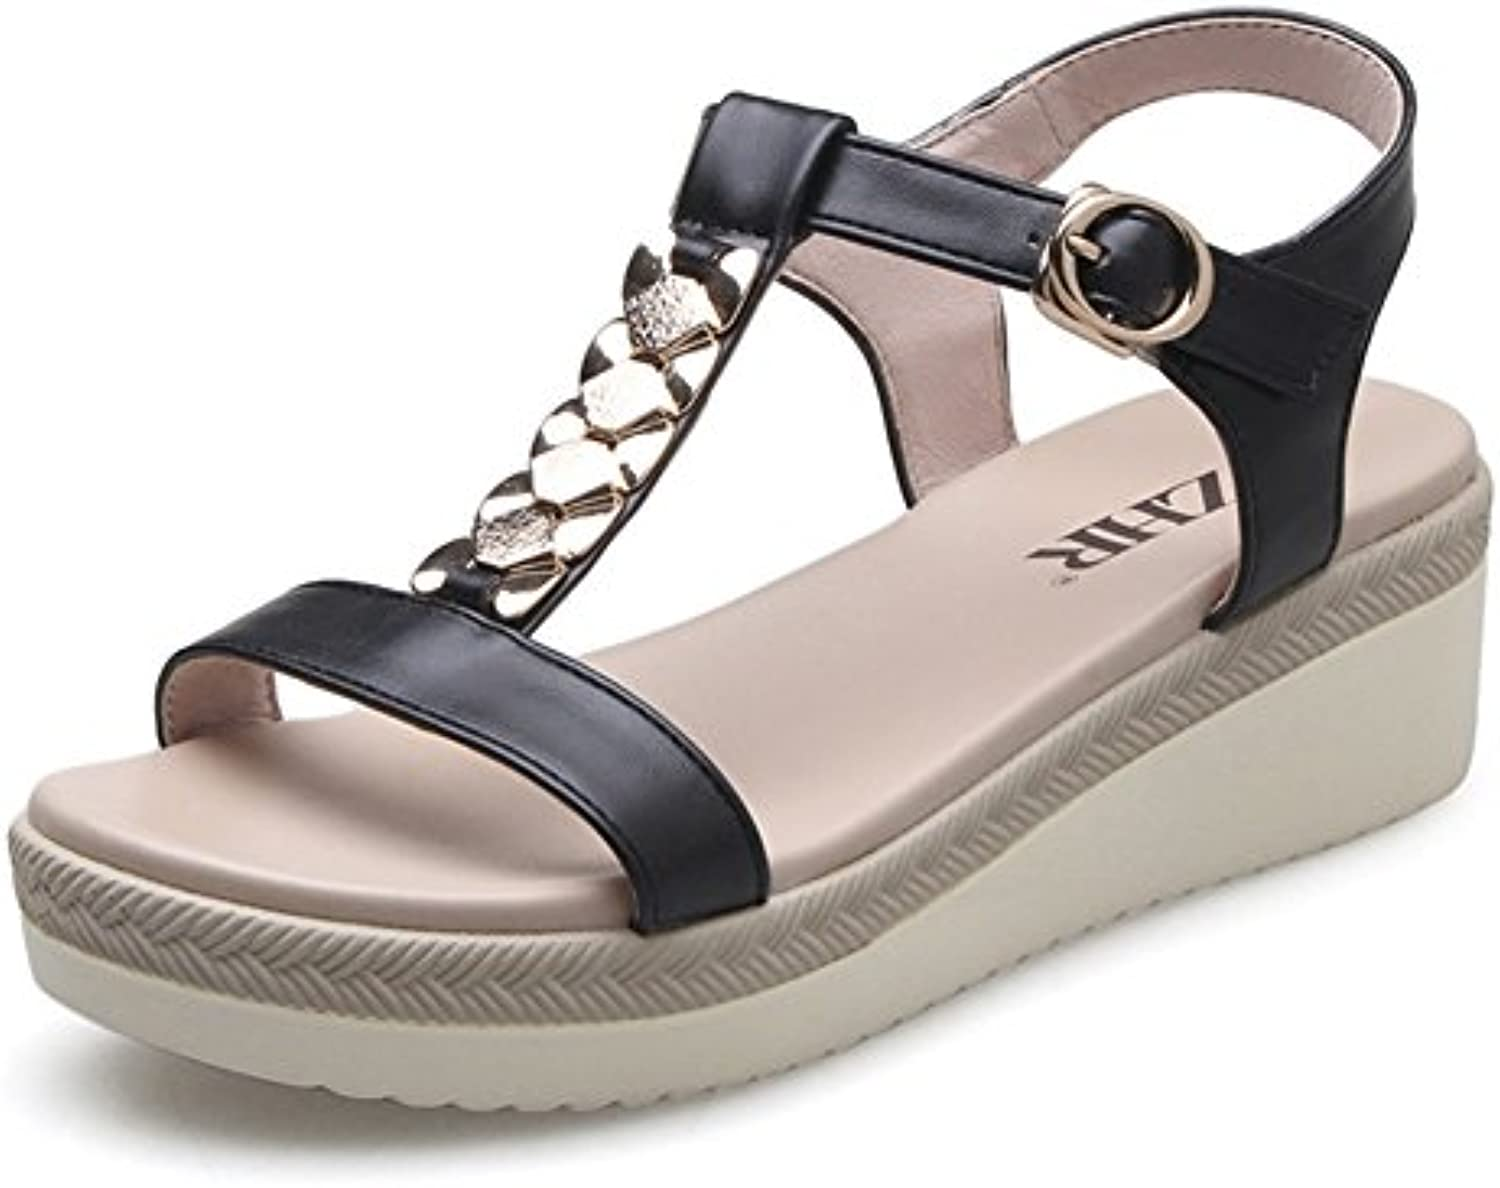 007a439bec1f41 Korean Version Of Wedge Sandals In The Summer